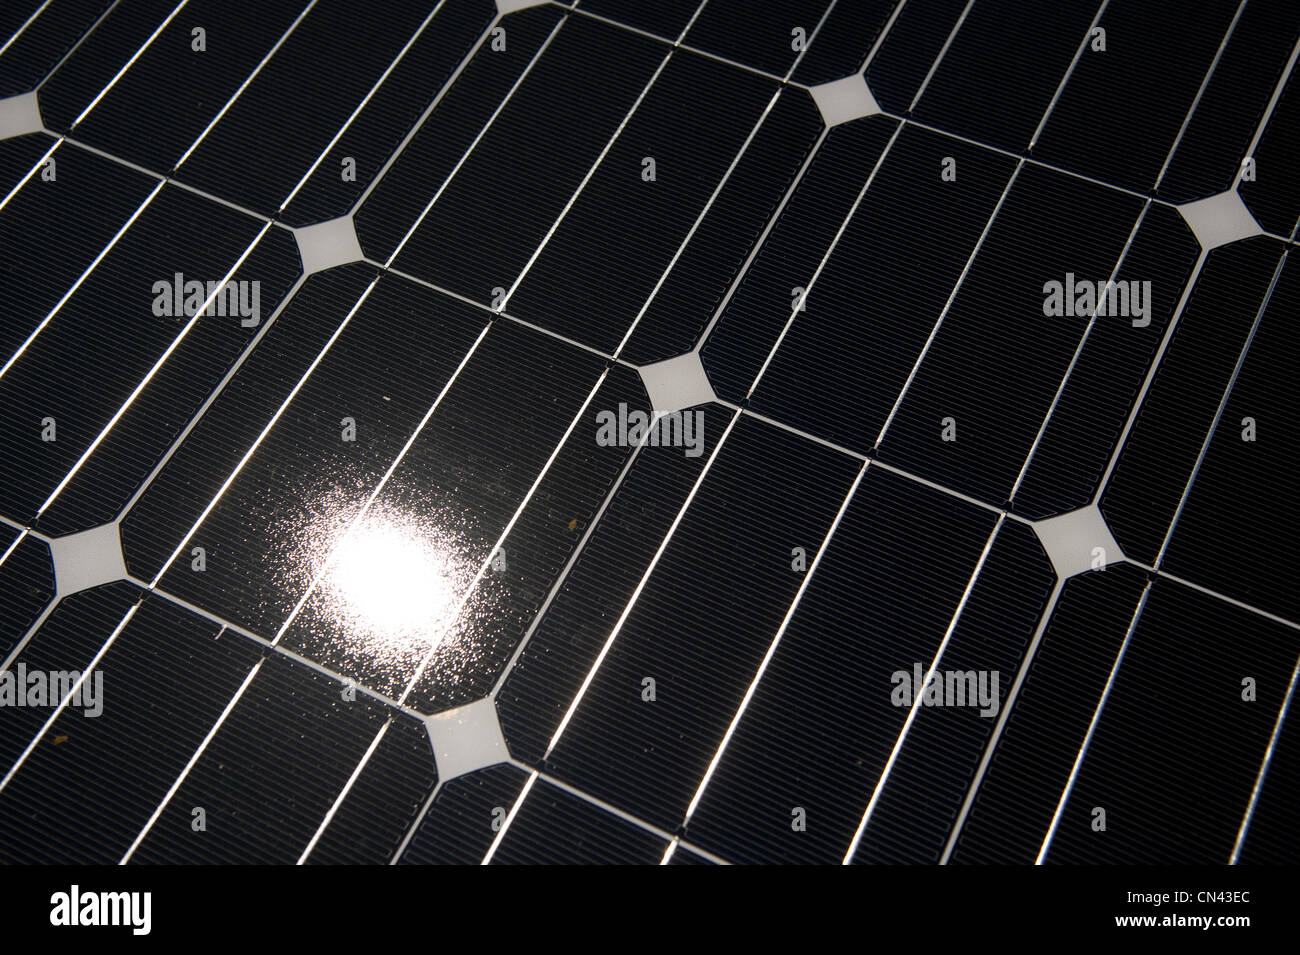 Solar energy solar power Photovoltaic cell cells in an array UK - Stock Image